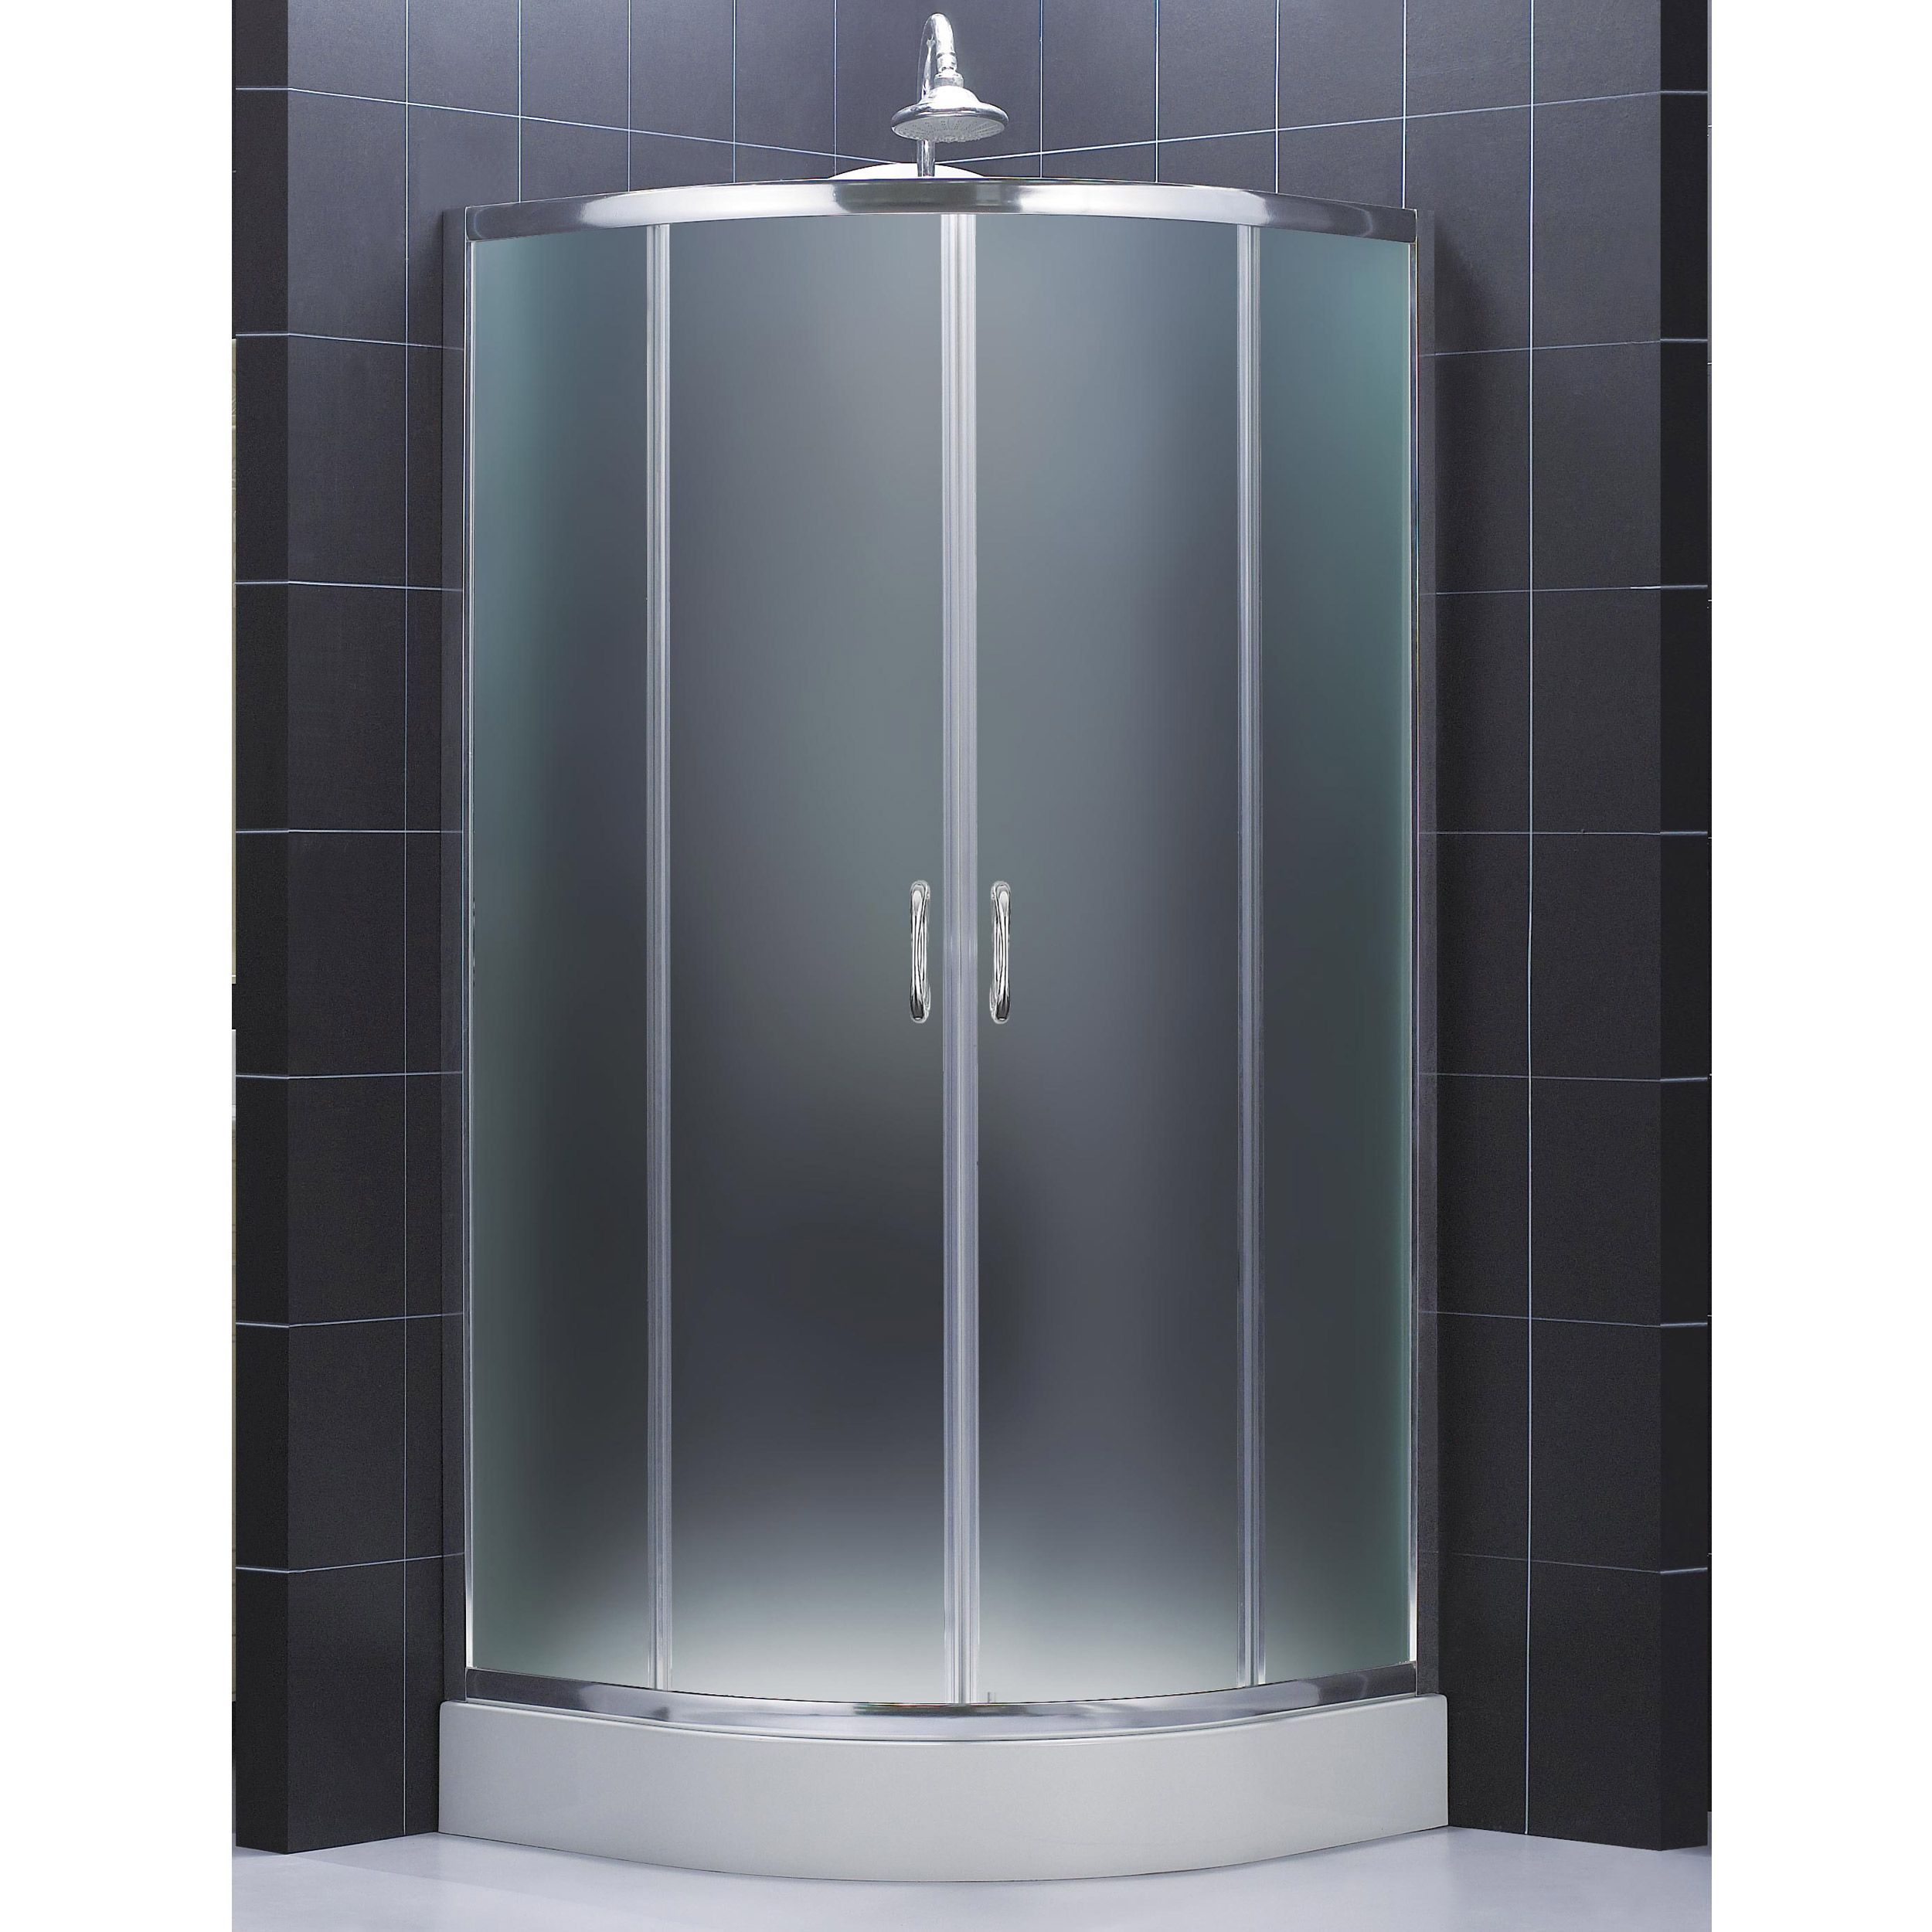 Dreamline Shower Kits Provide A Complete Solution To